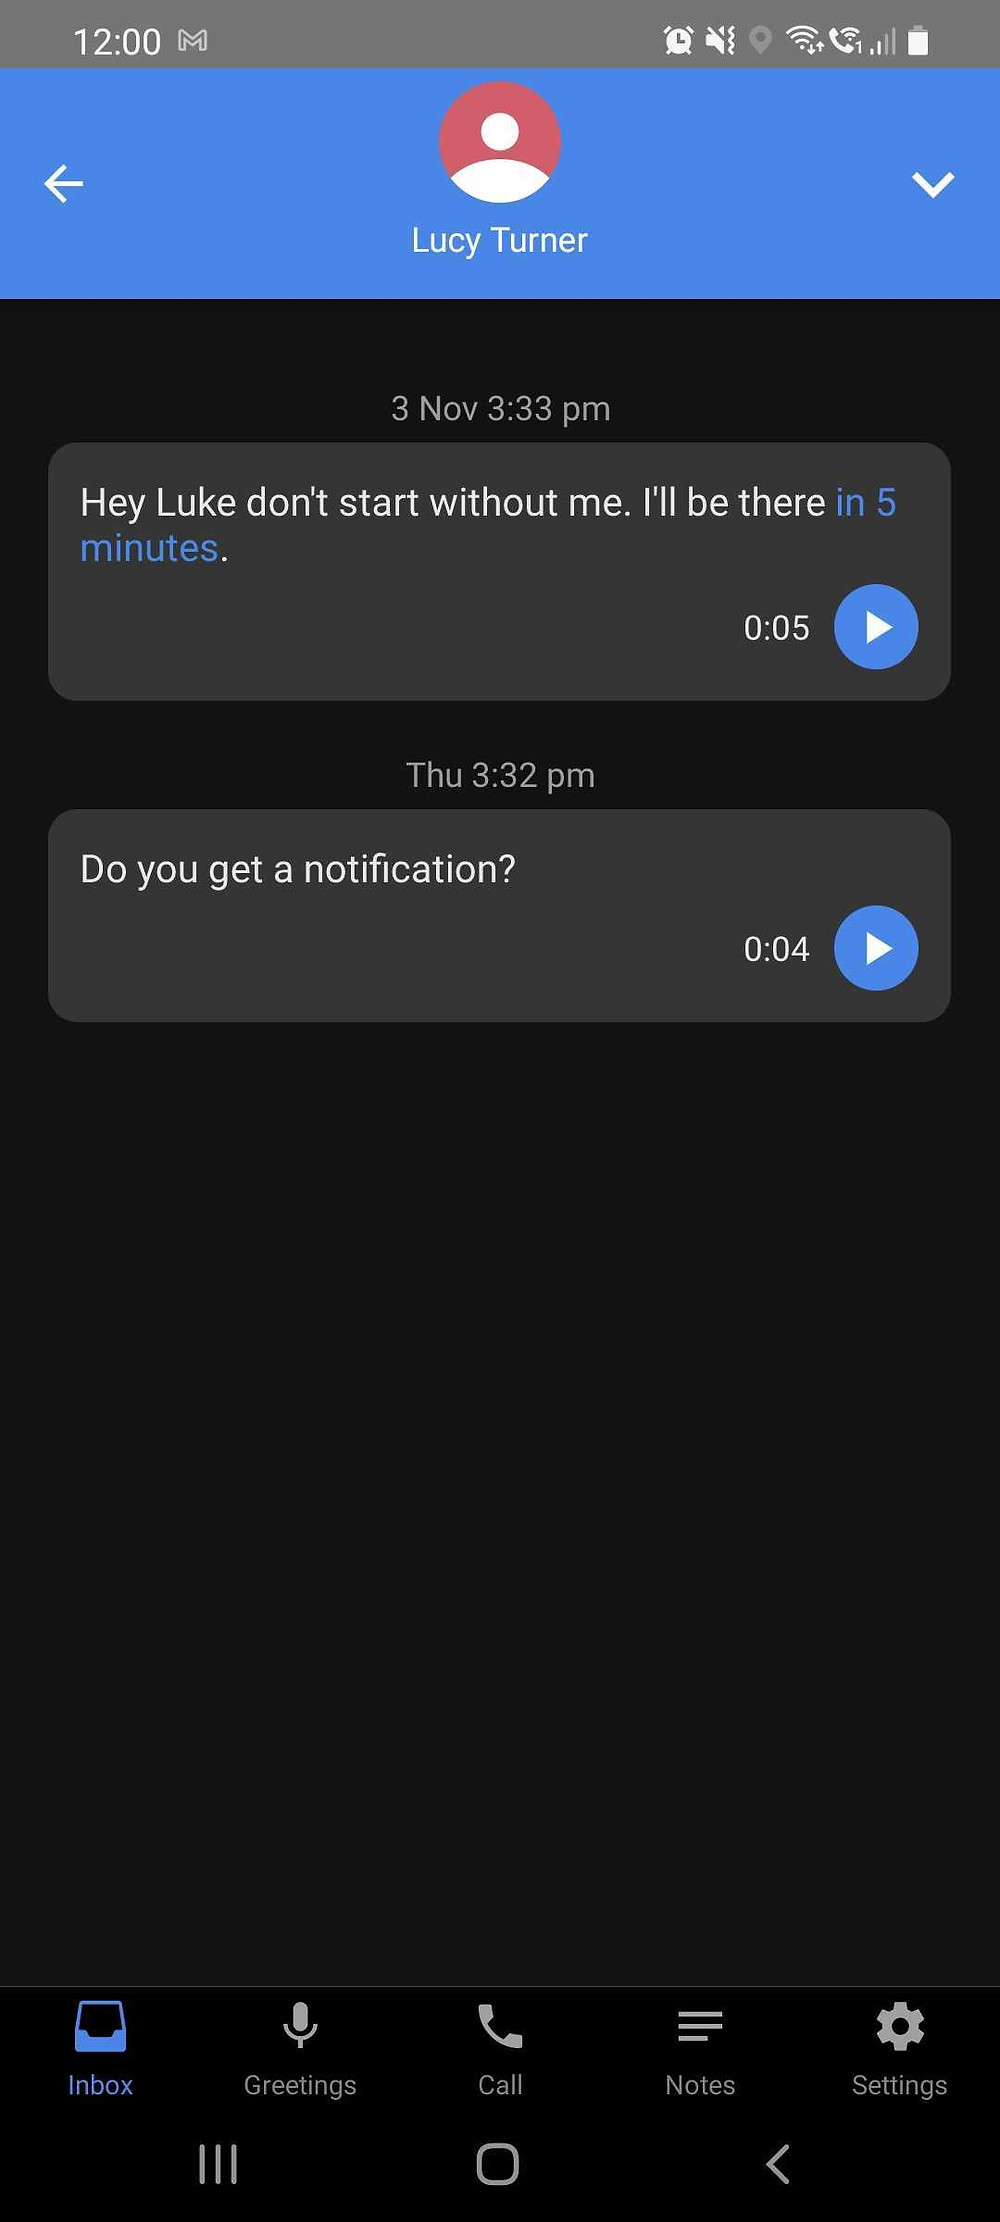 A screenshot of the Vxt mobile app demonstrating visual voicemail